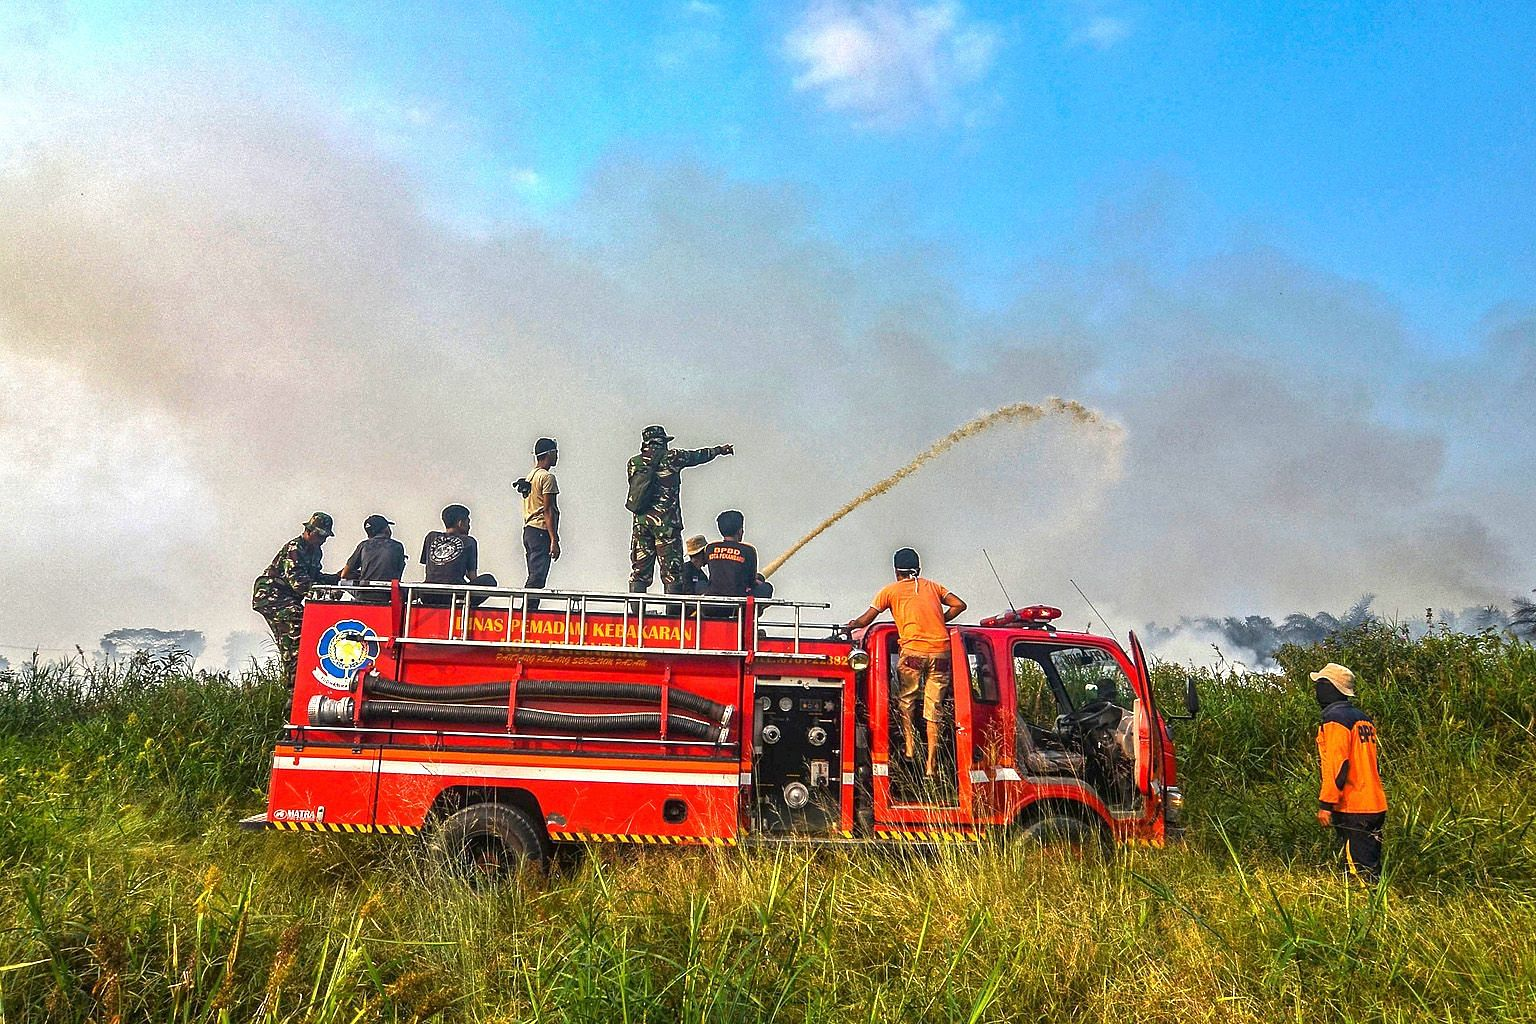 A boy wearing a mask to protect against air pollution at Sultan Syarif Kasim II airport in Pekanbaru, Riau, last Thursday. Indonesian firefighters battling a fire at an oil palm plantation in Riau, the peatland-rich province on Sumatra island, earlie